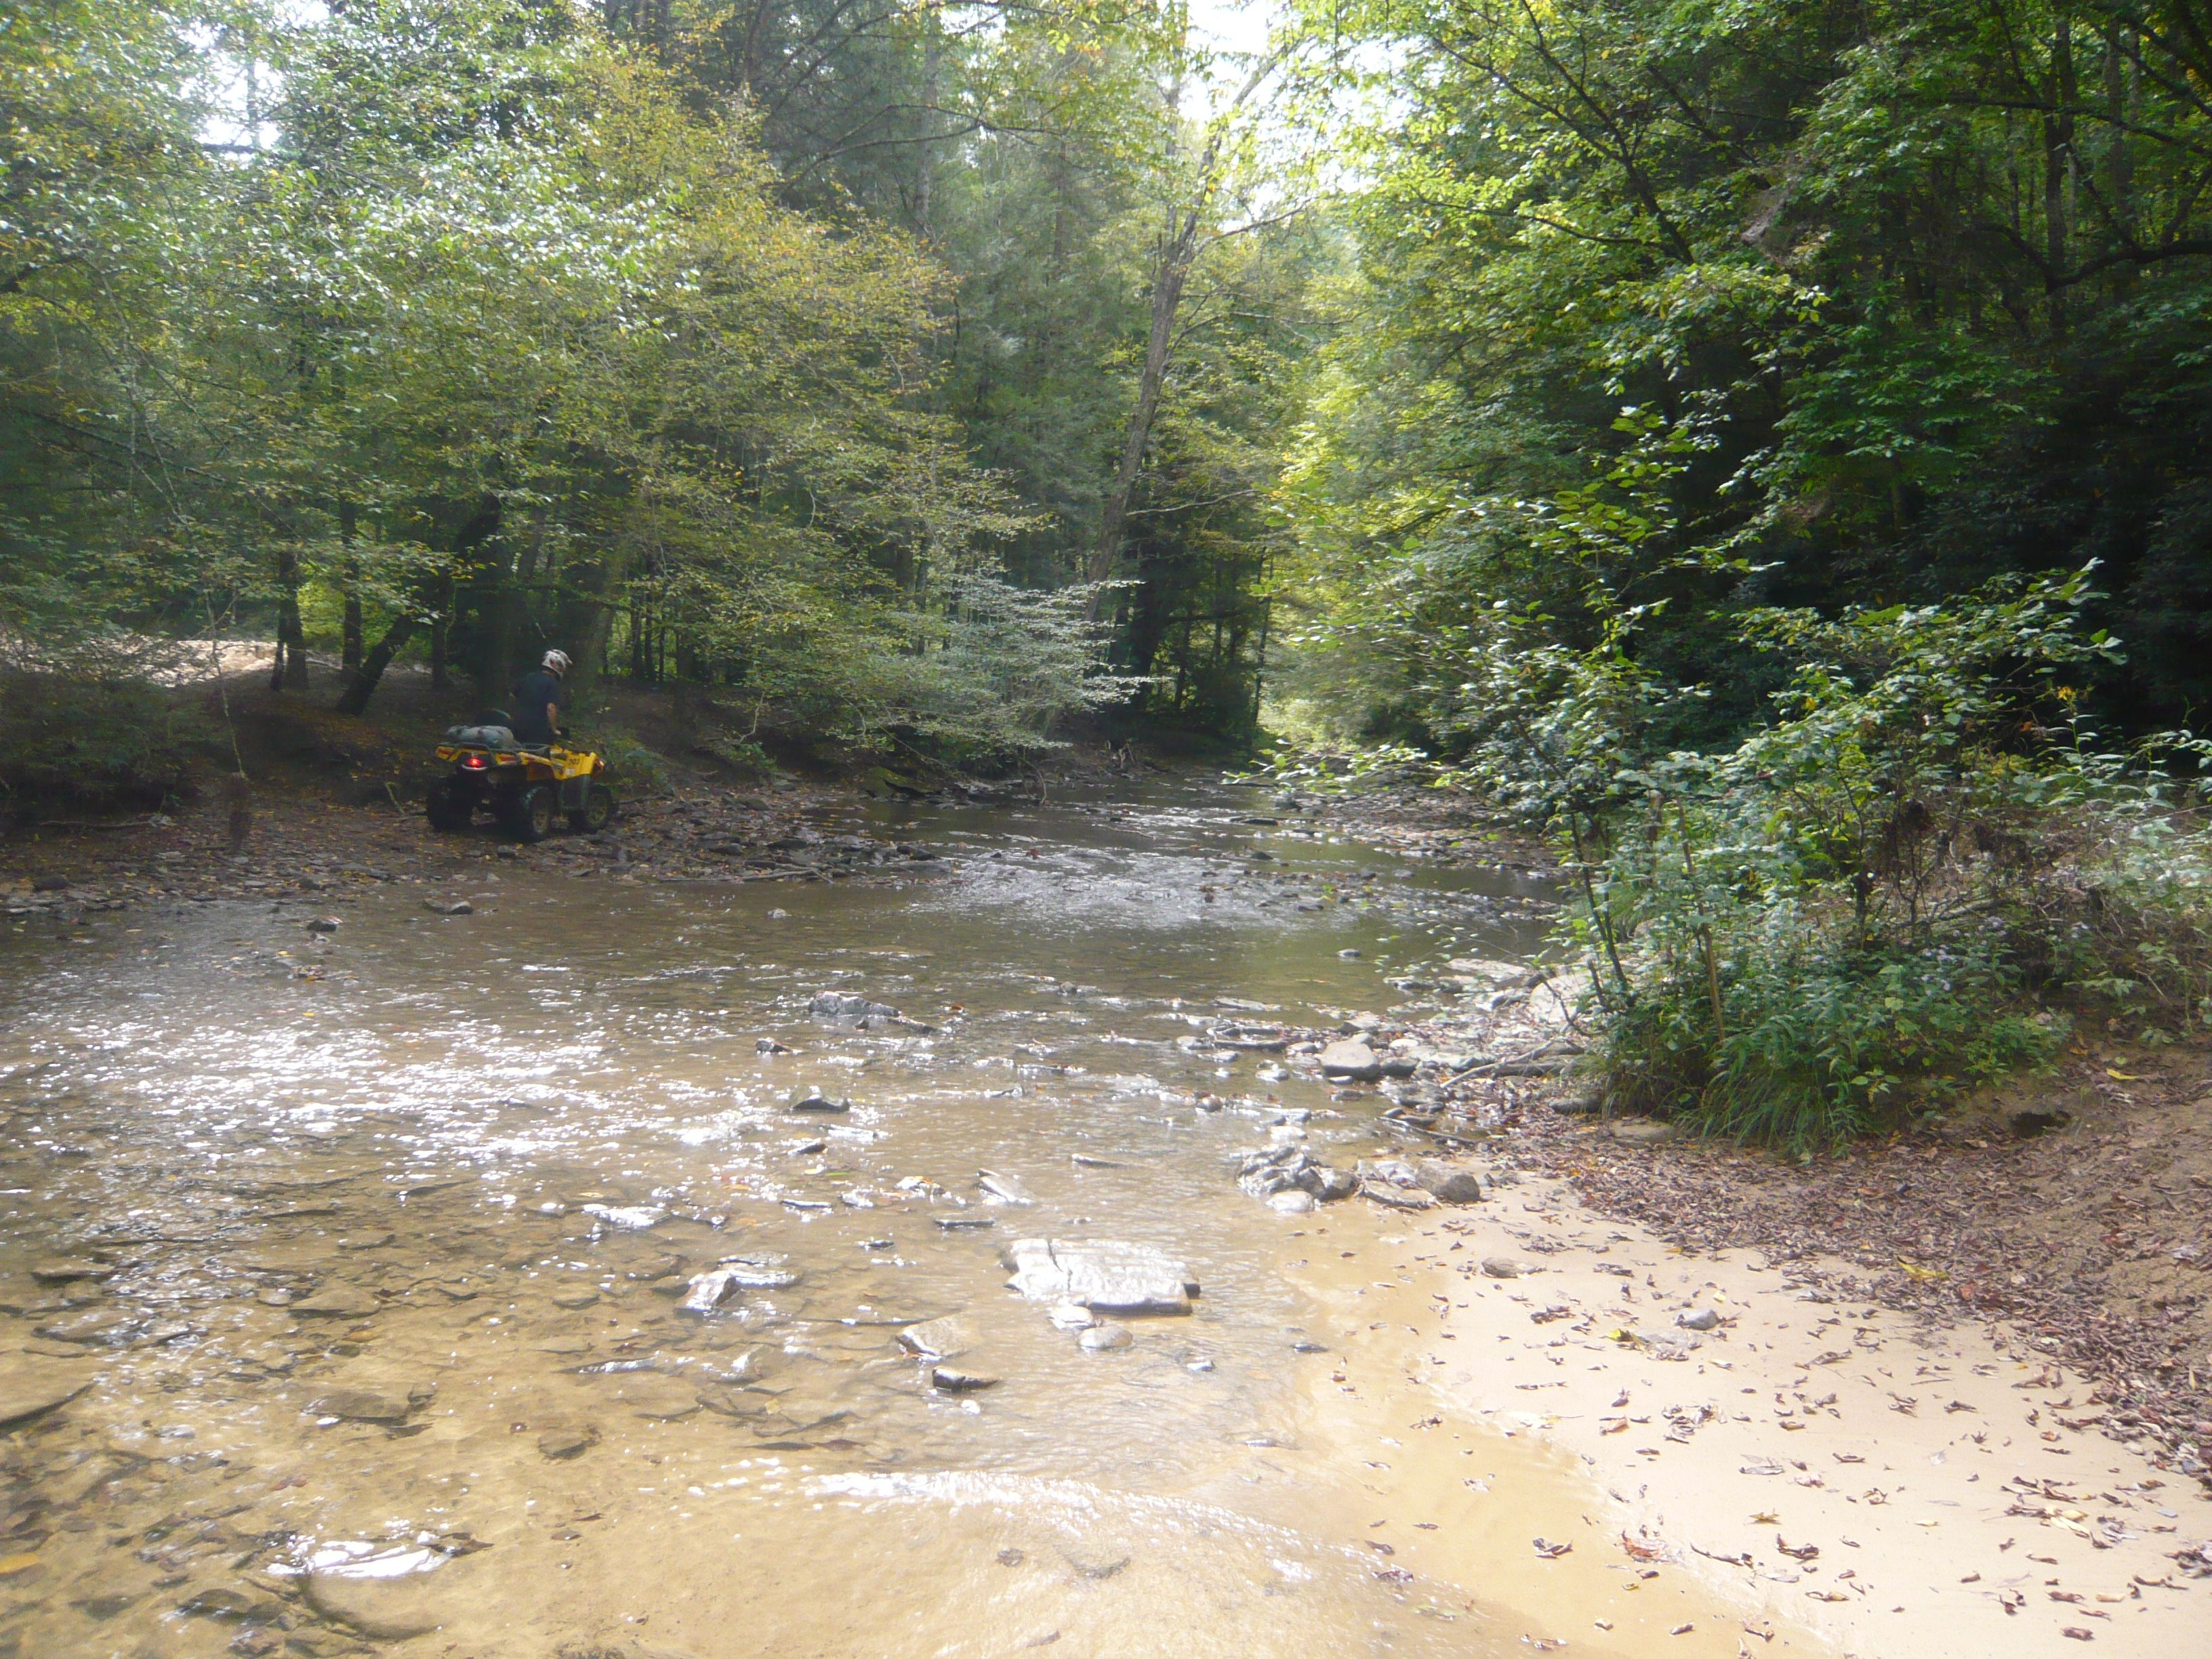 4 Wheelin On The Hatfield Mccoy Trail In Wv Rockhouse Pinnacle Creek Indian Ridge Ride Royal Blue Places To See Atv Riding